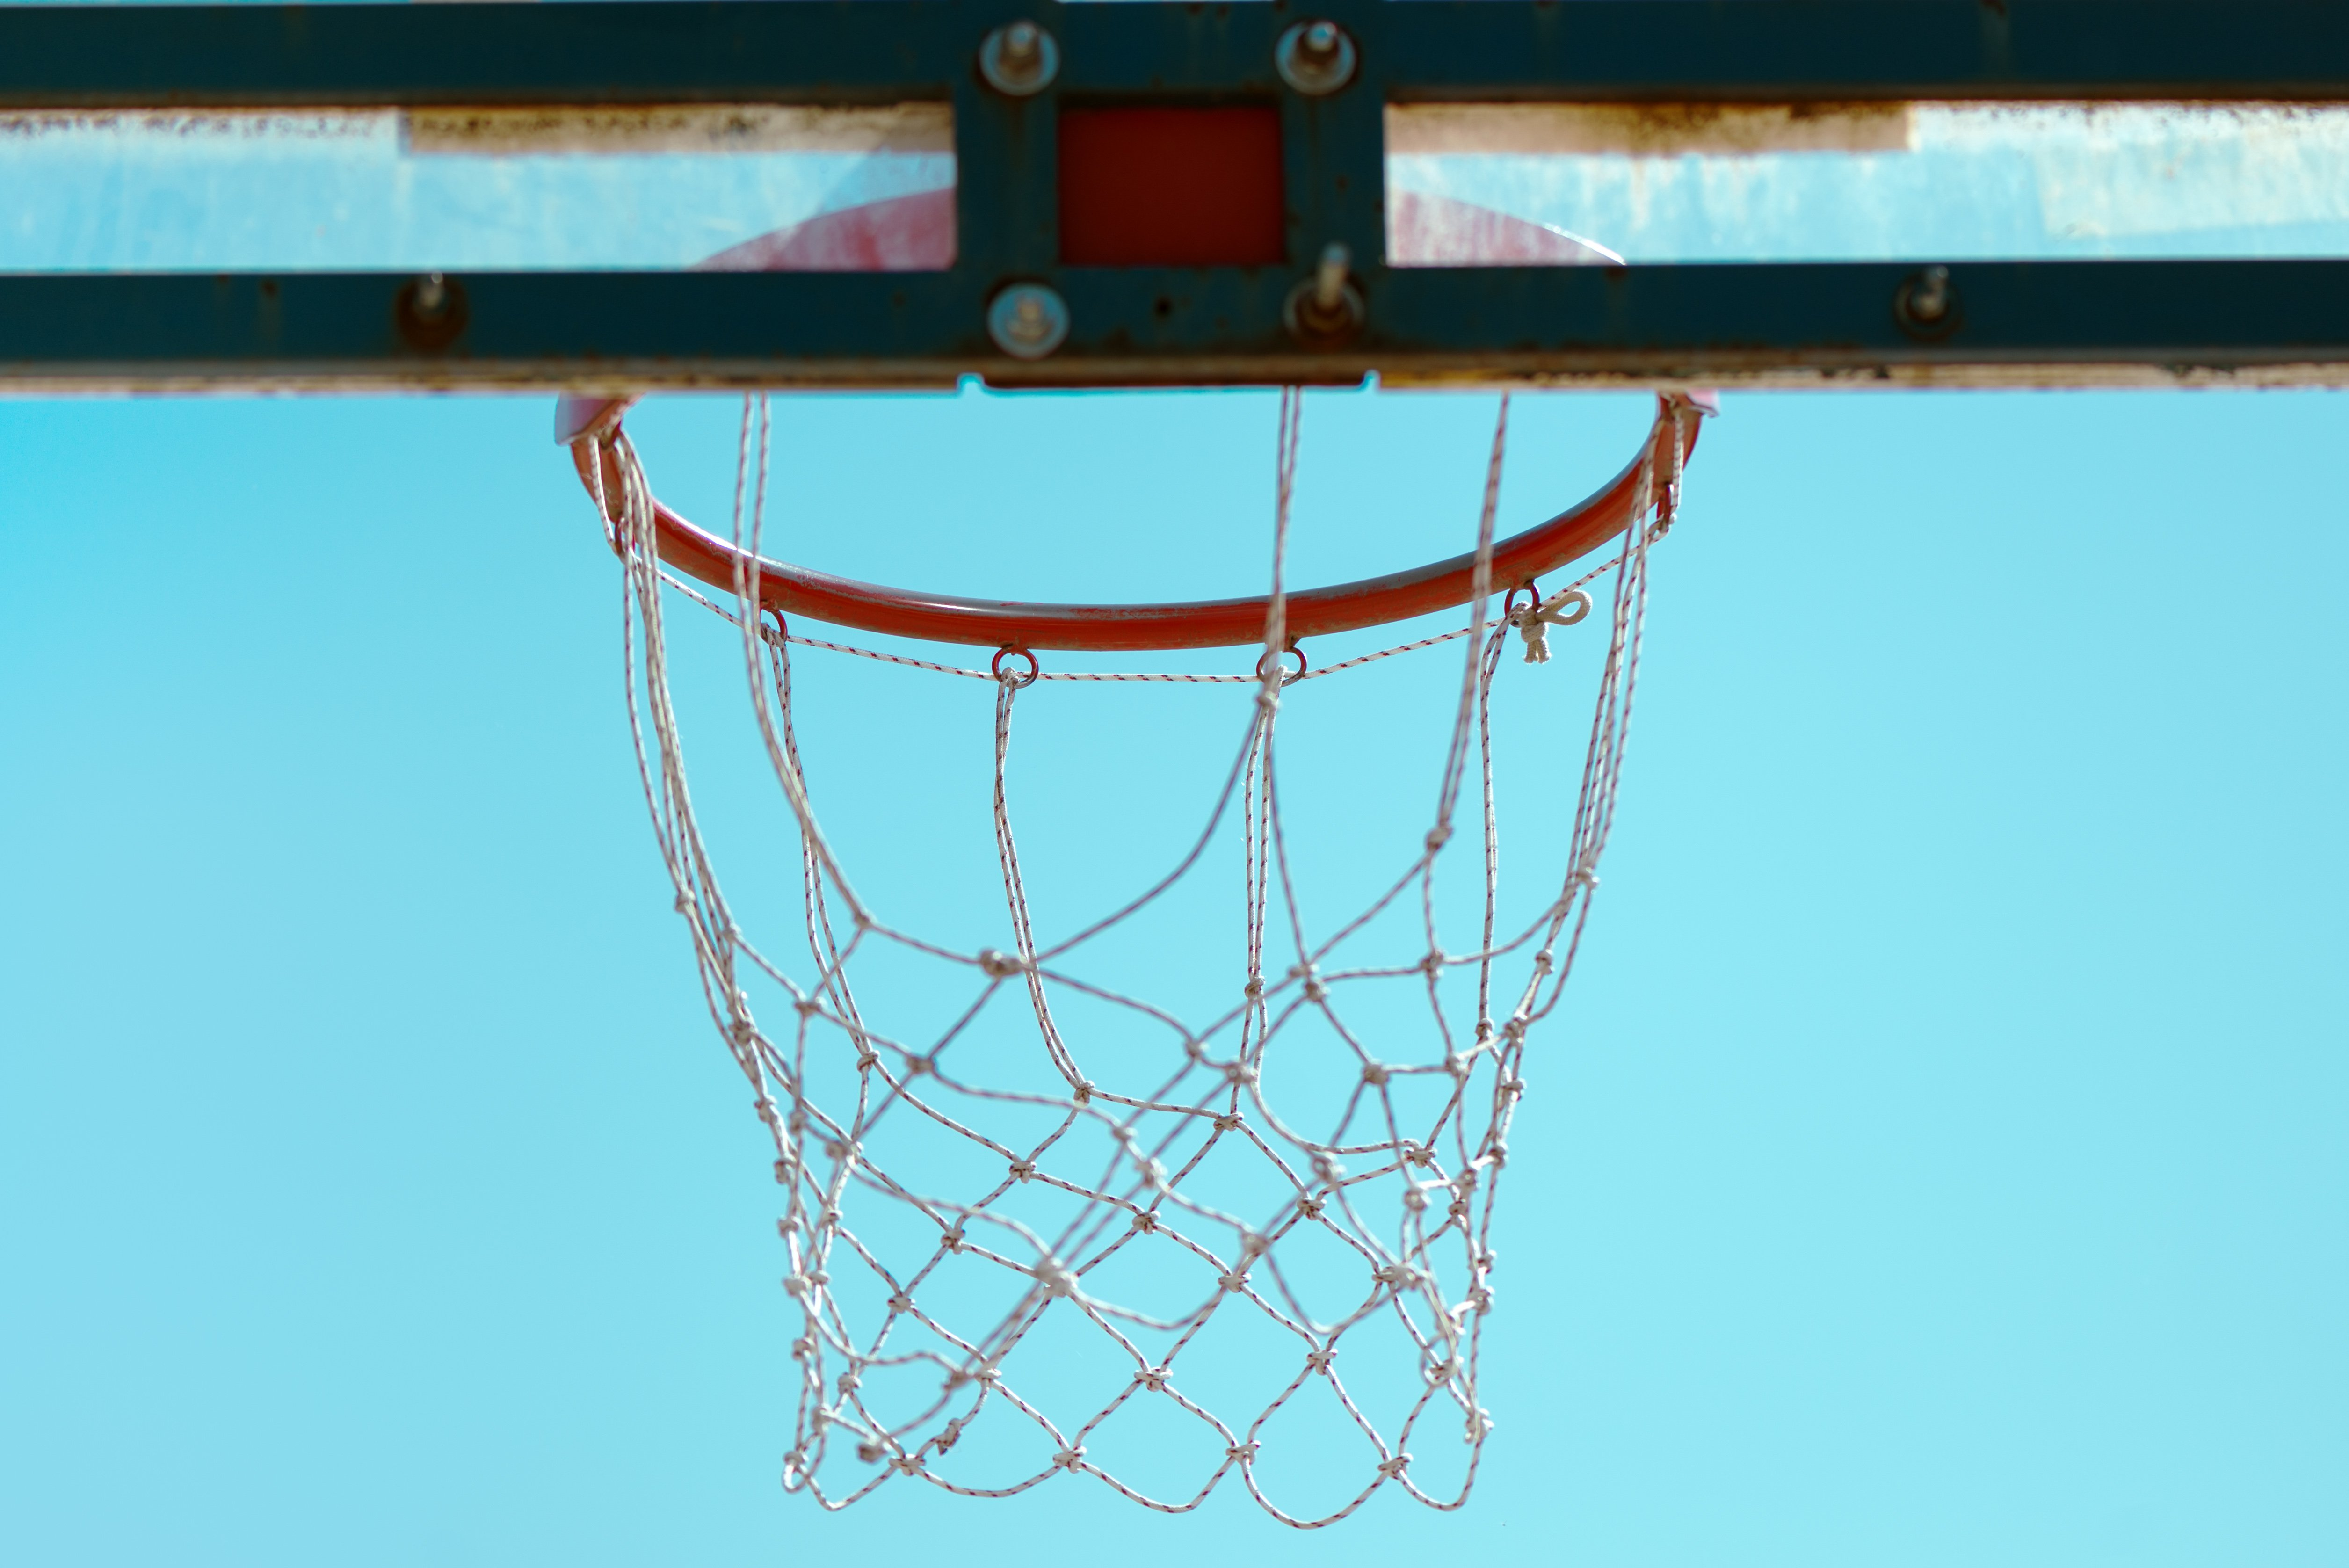 basketball-hoop-with-net-PMAZC76